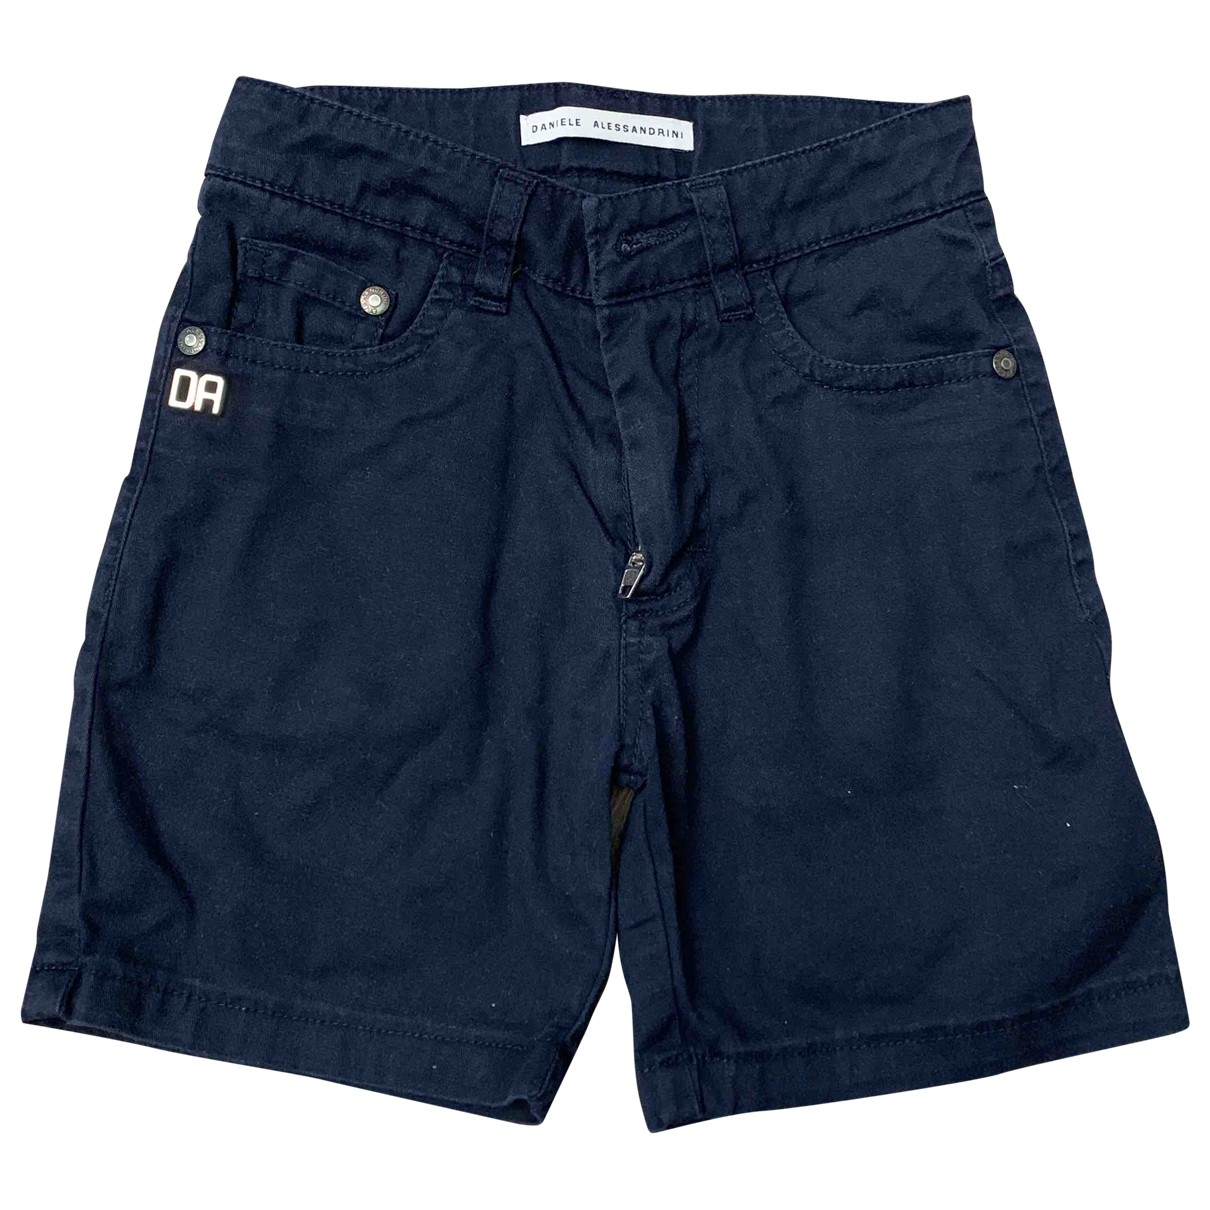 Daniele Alessandrini \N Blue Cotton Shorts for Kids 4 years - until 40 inches UK